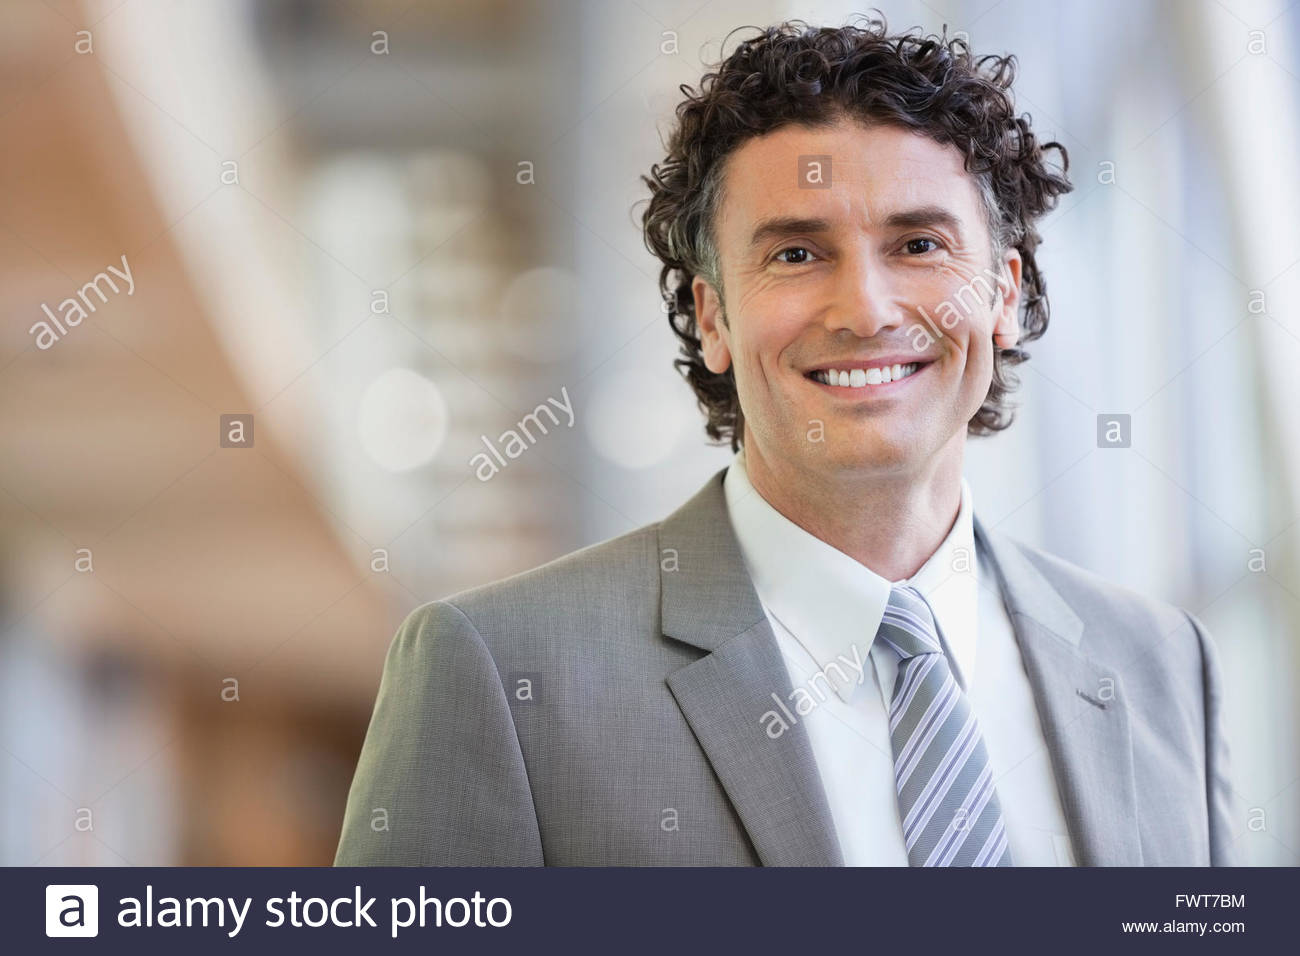 Portrait of mature businessman smiling in office - Stock Image